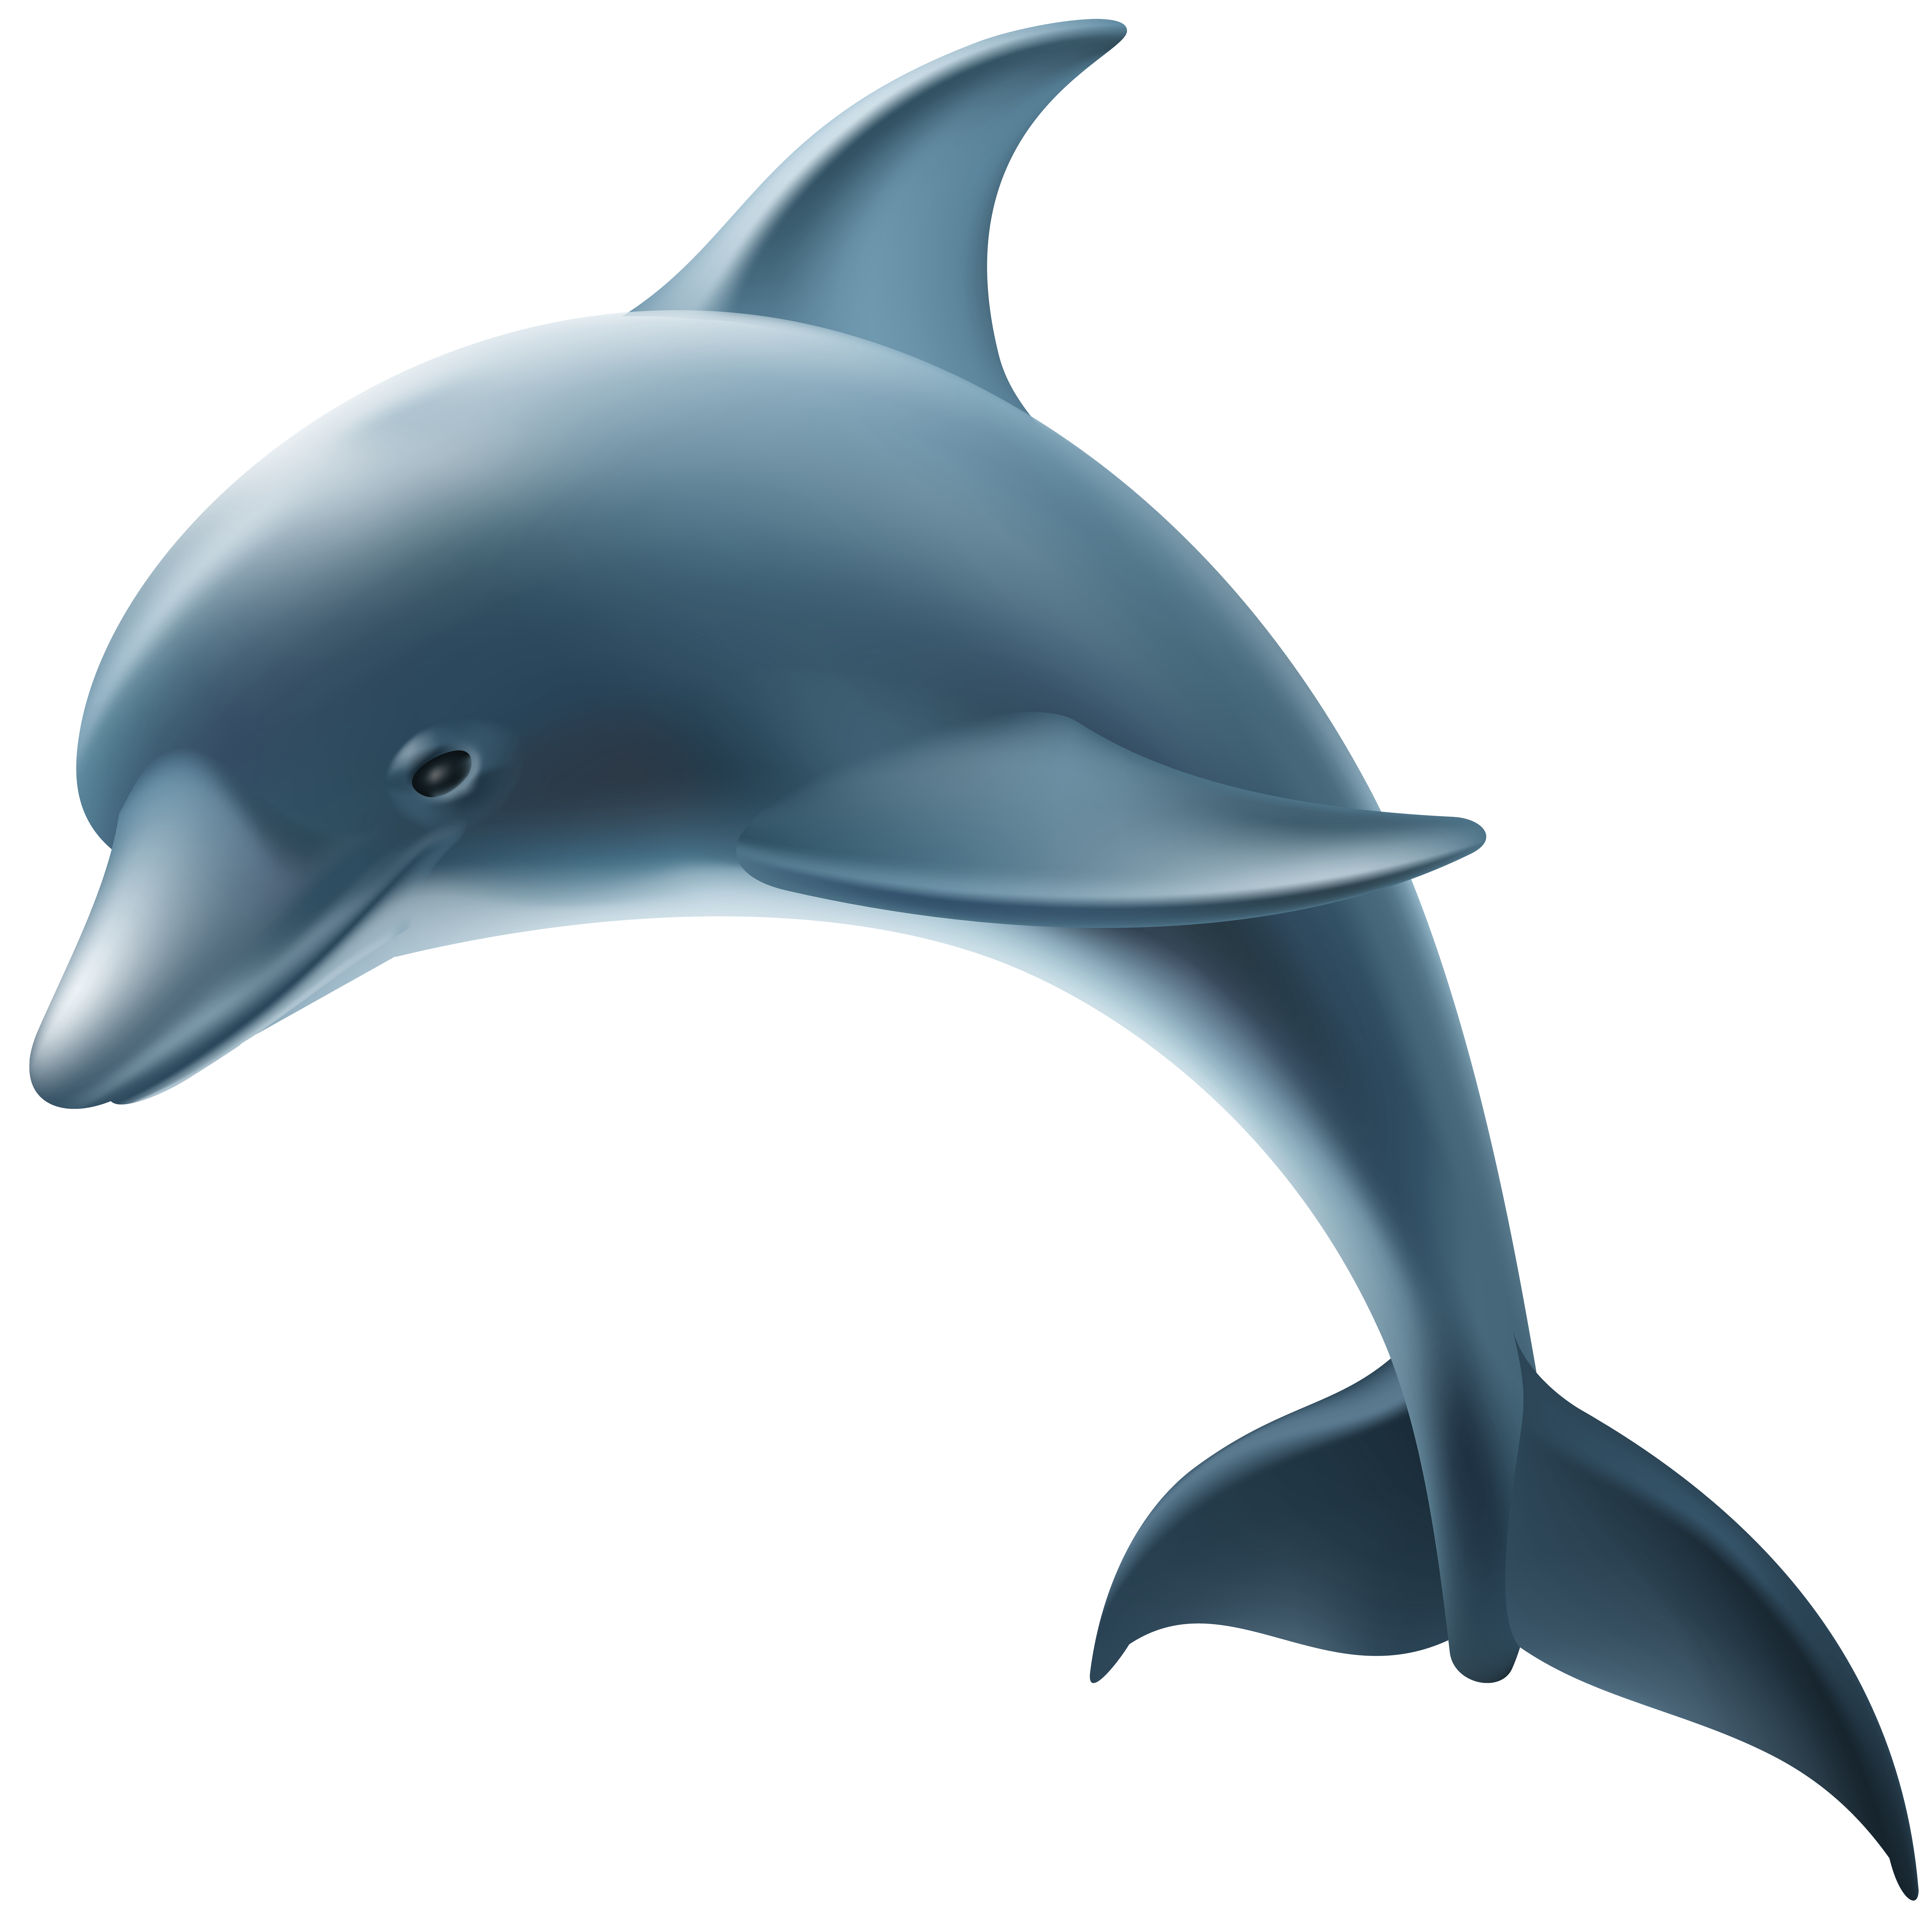 dolphin transparent png